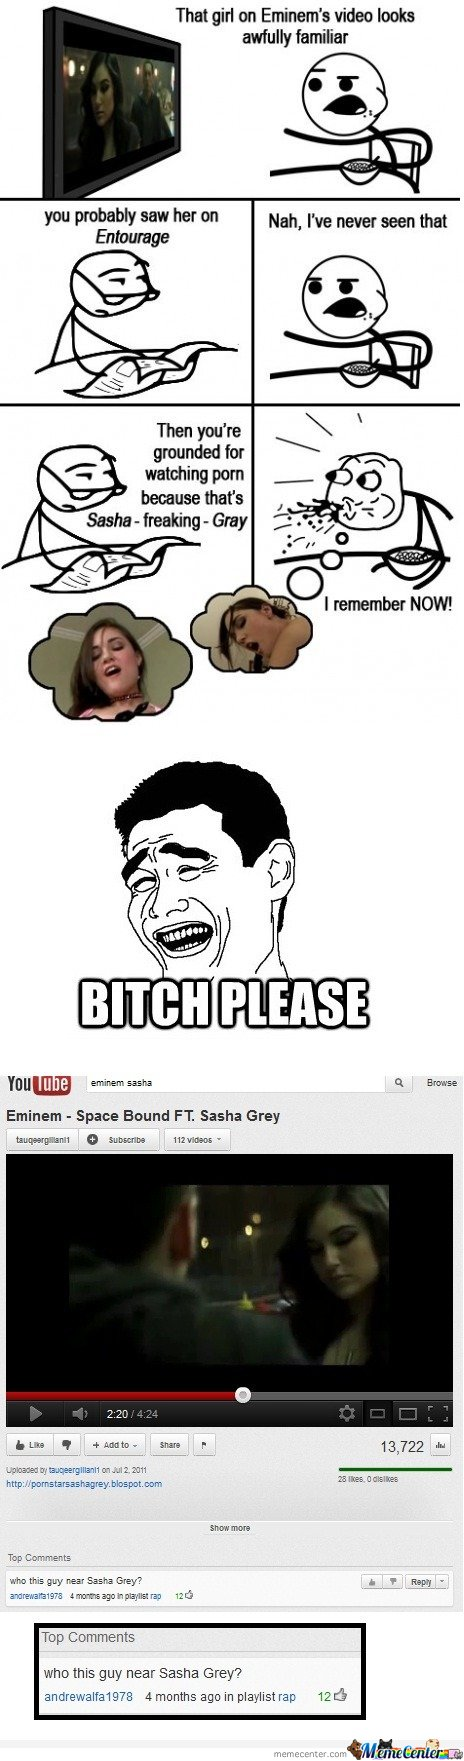 That girl on Eminem's video looks familiar -Cereal Guy - Remixed